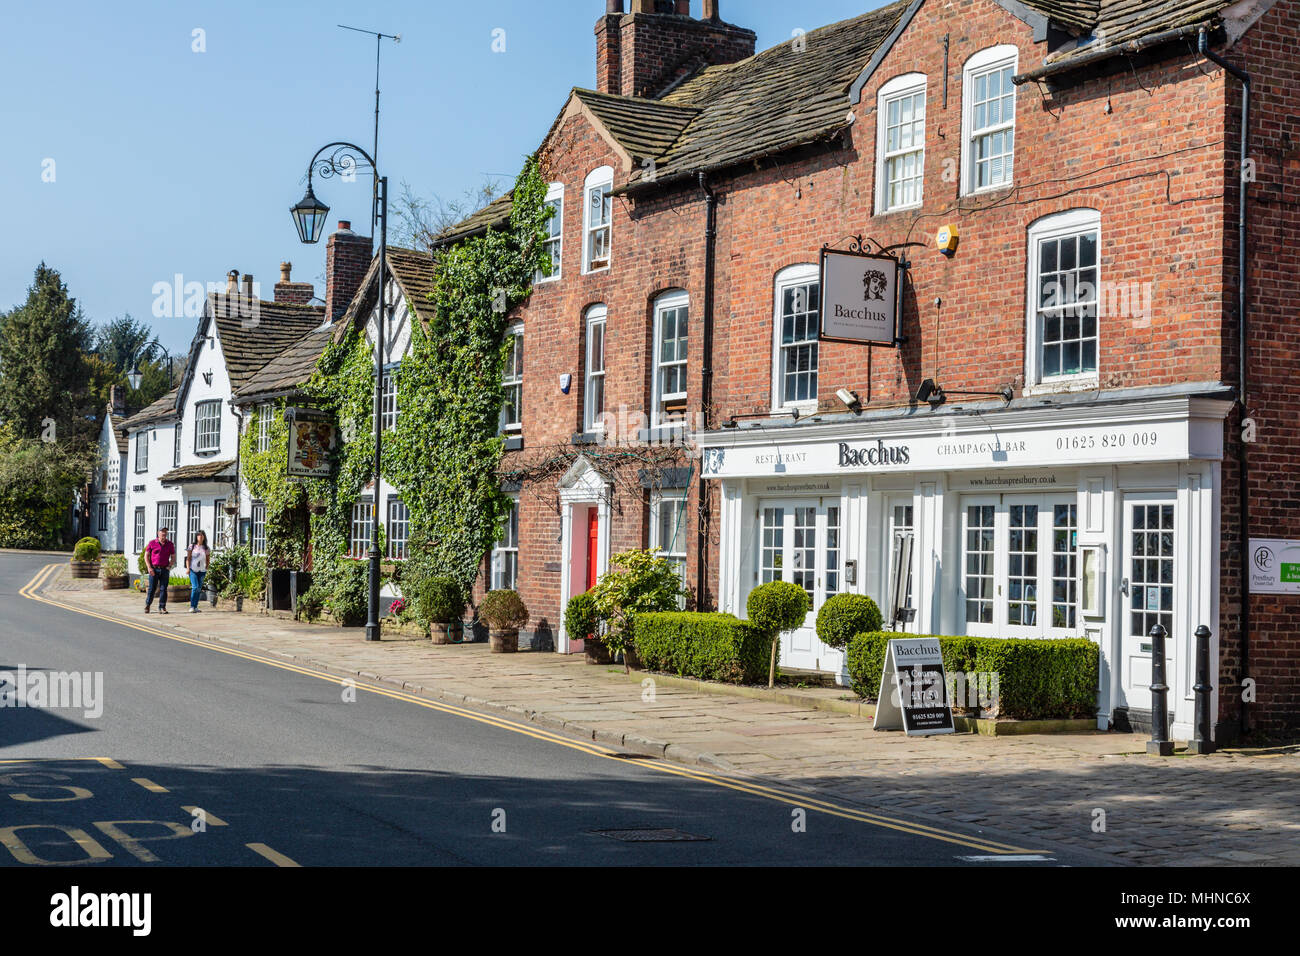 The Cheshire village of Prestbury famous for its historic buildings and footballers homes - Stock Image